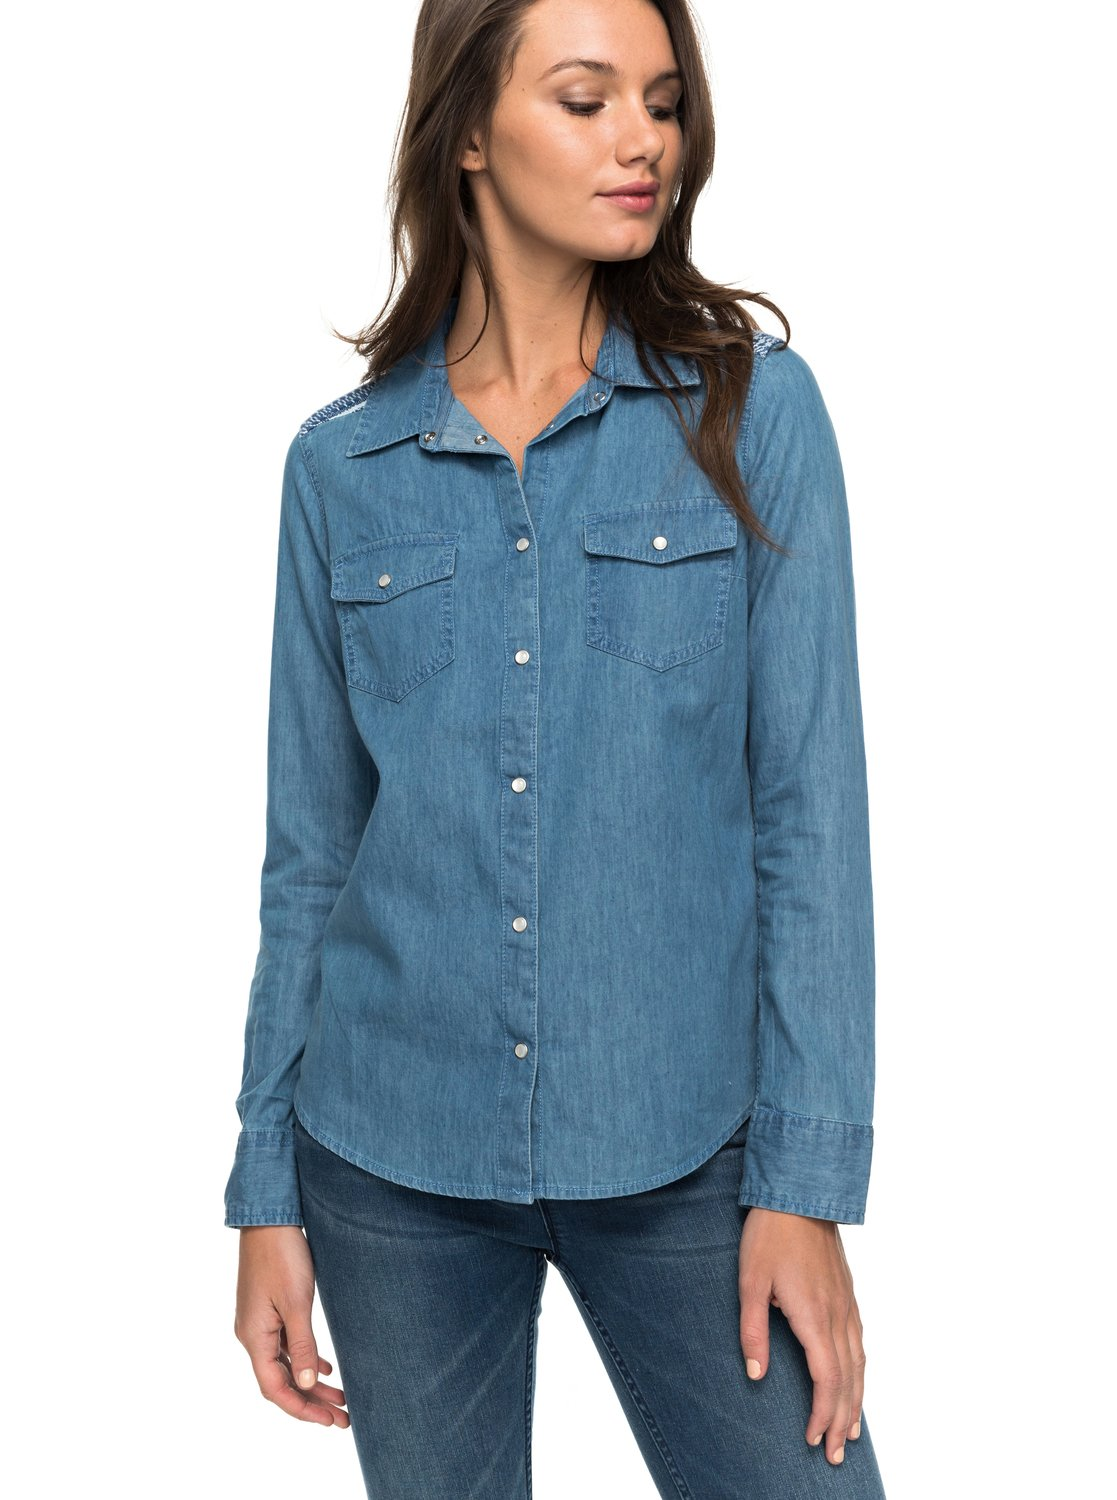 Light Of Down - Camisa de denim de manga larga para Mujer Roxy